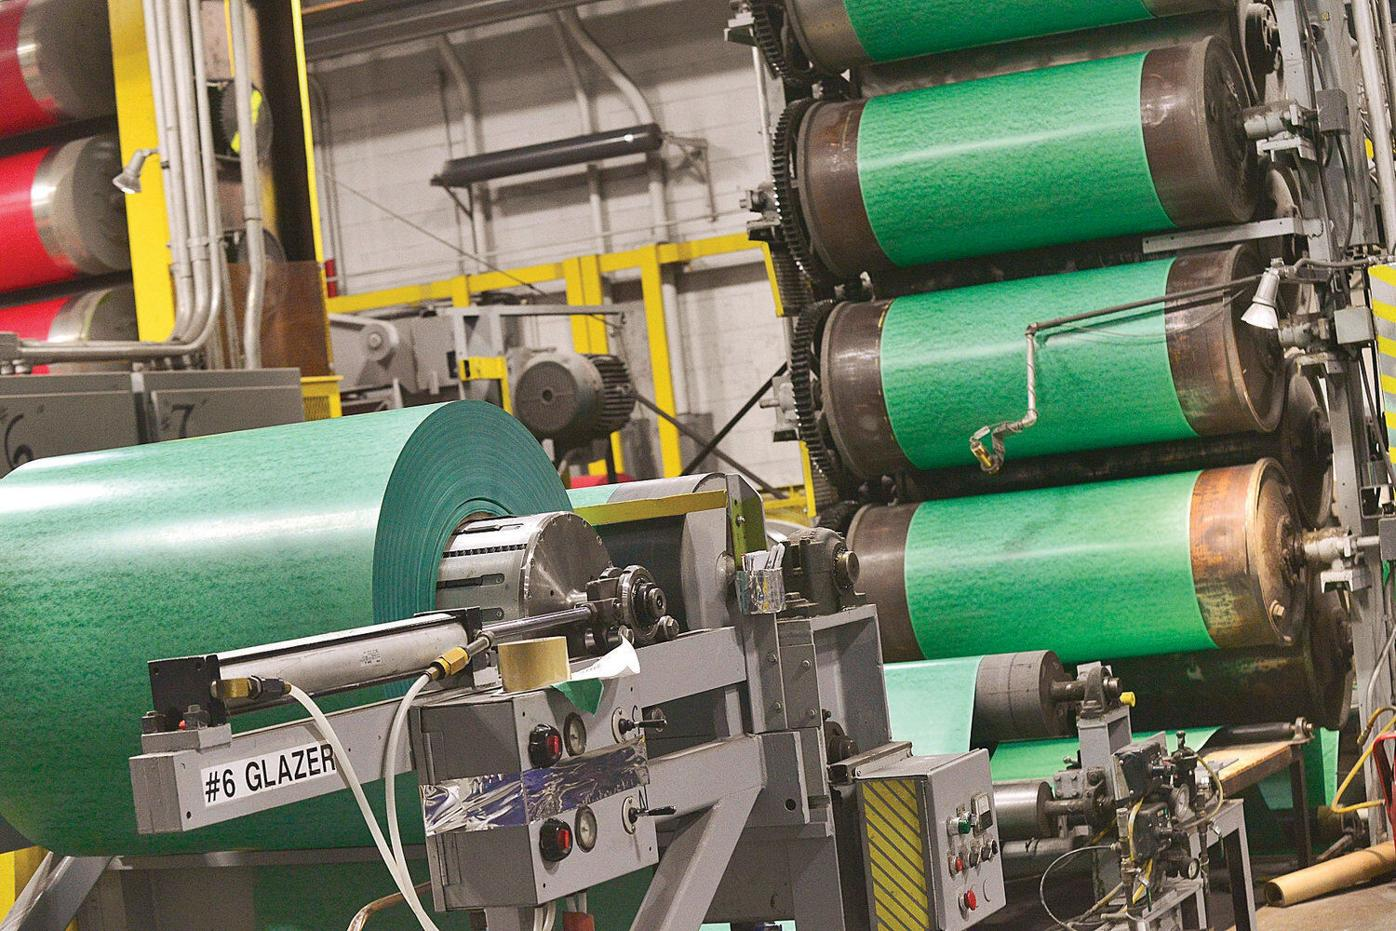 Making the impossible possible at former Neenah paper mill